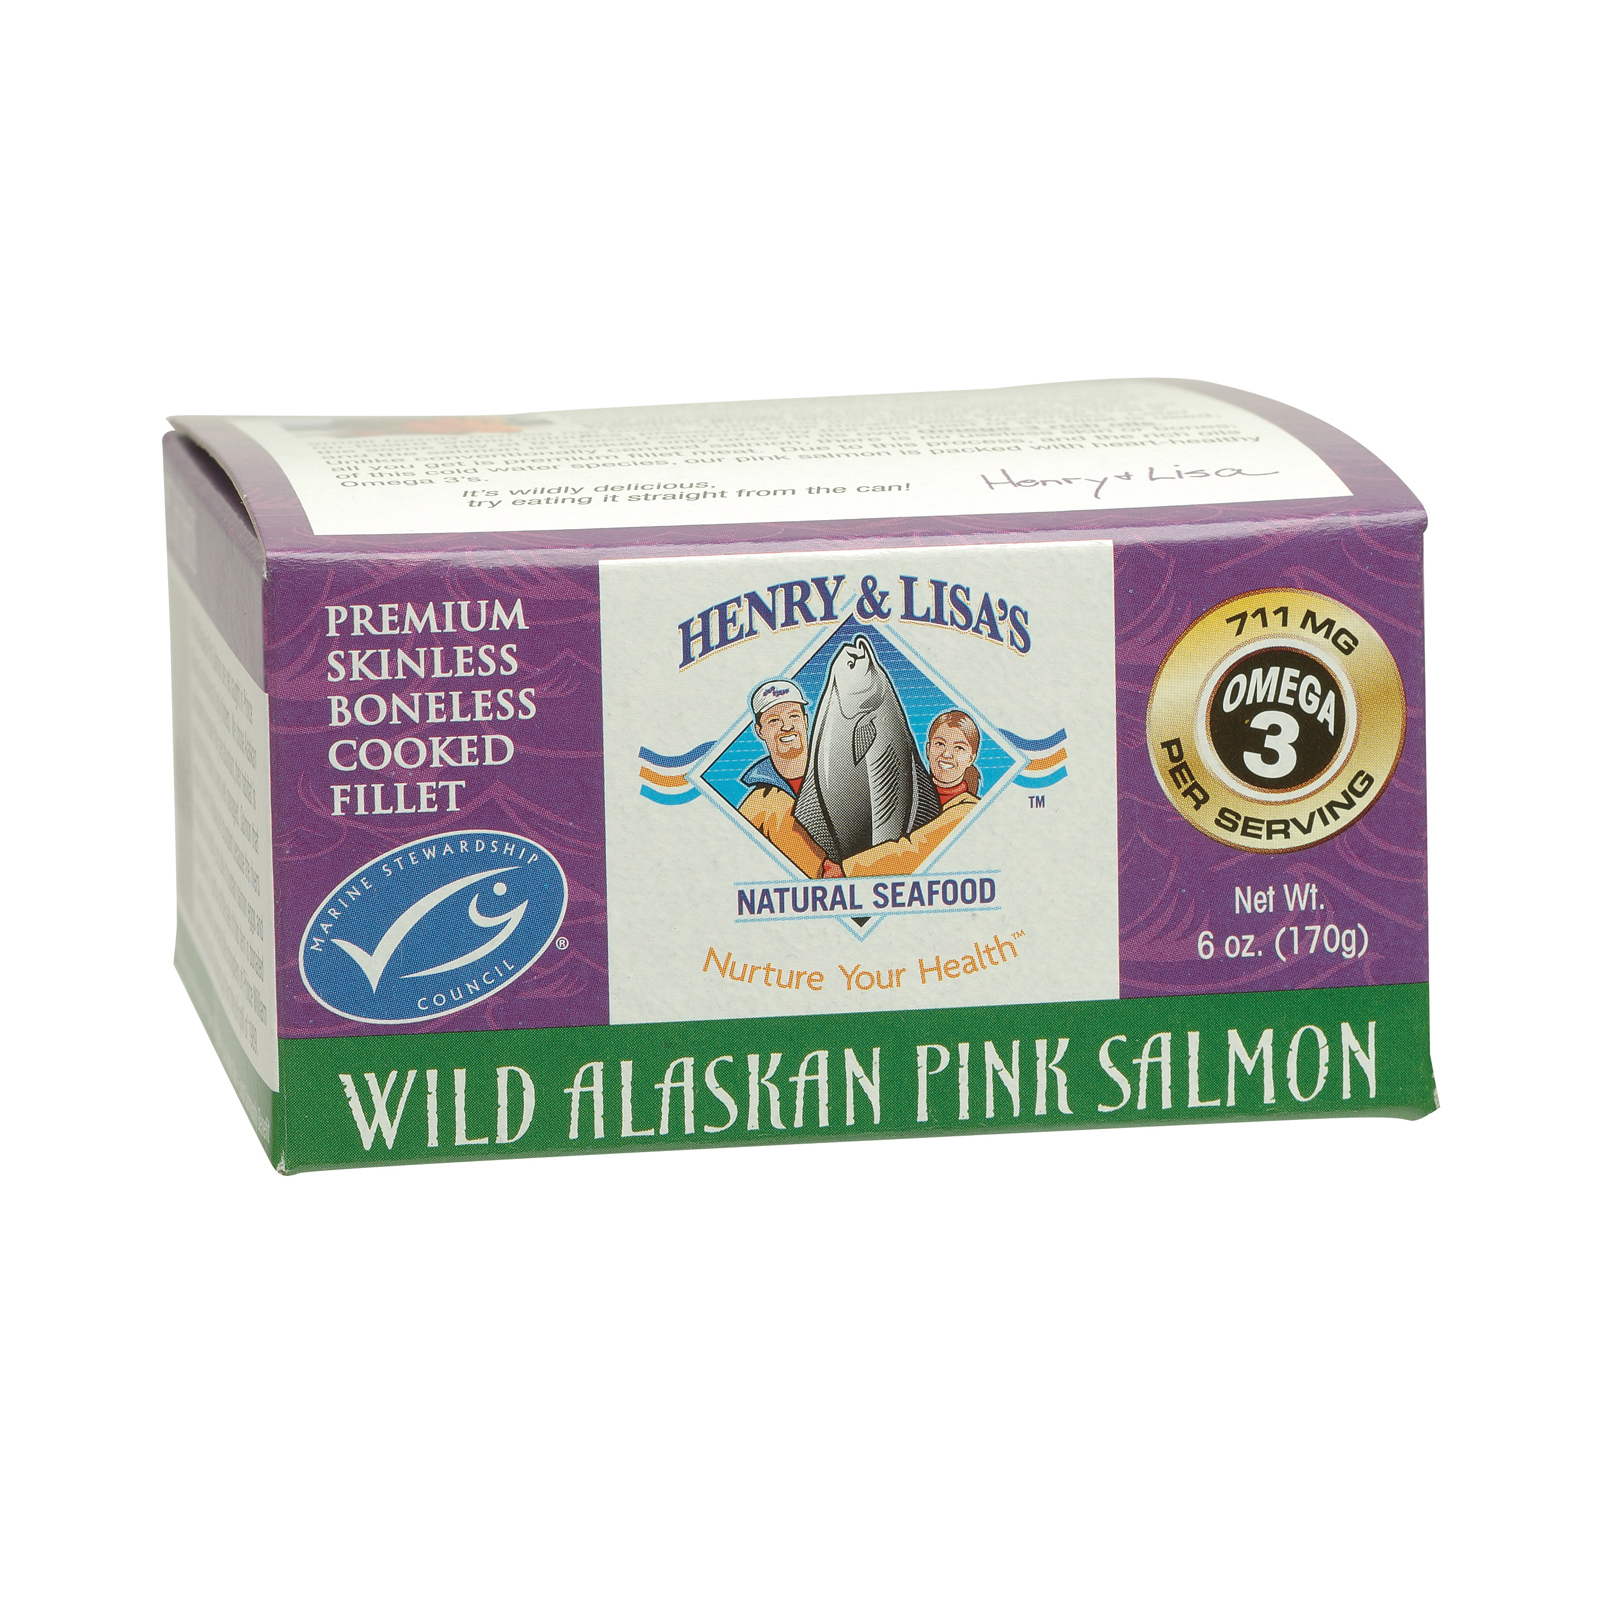 Henry and Lisa's Natural Seafood Wild Alaskan Pink Salmon Case of 12 6 oz. by